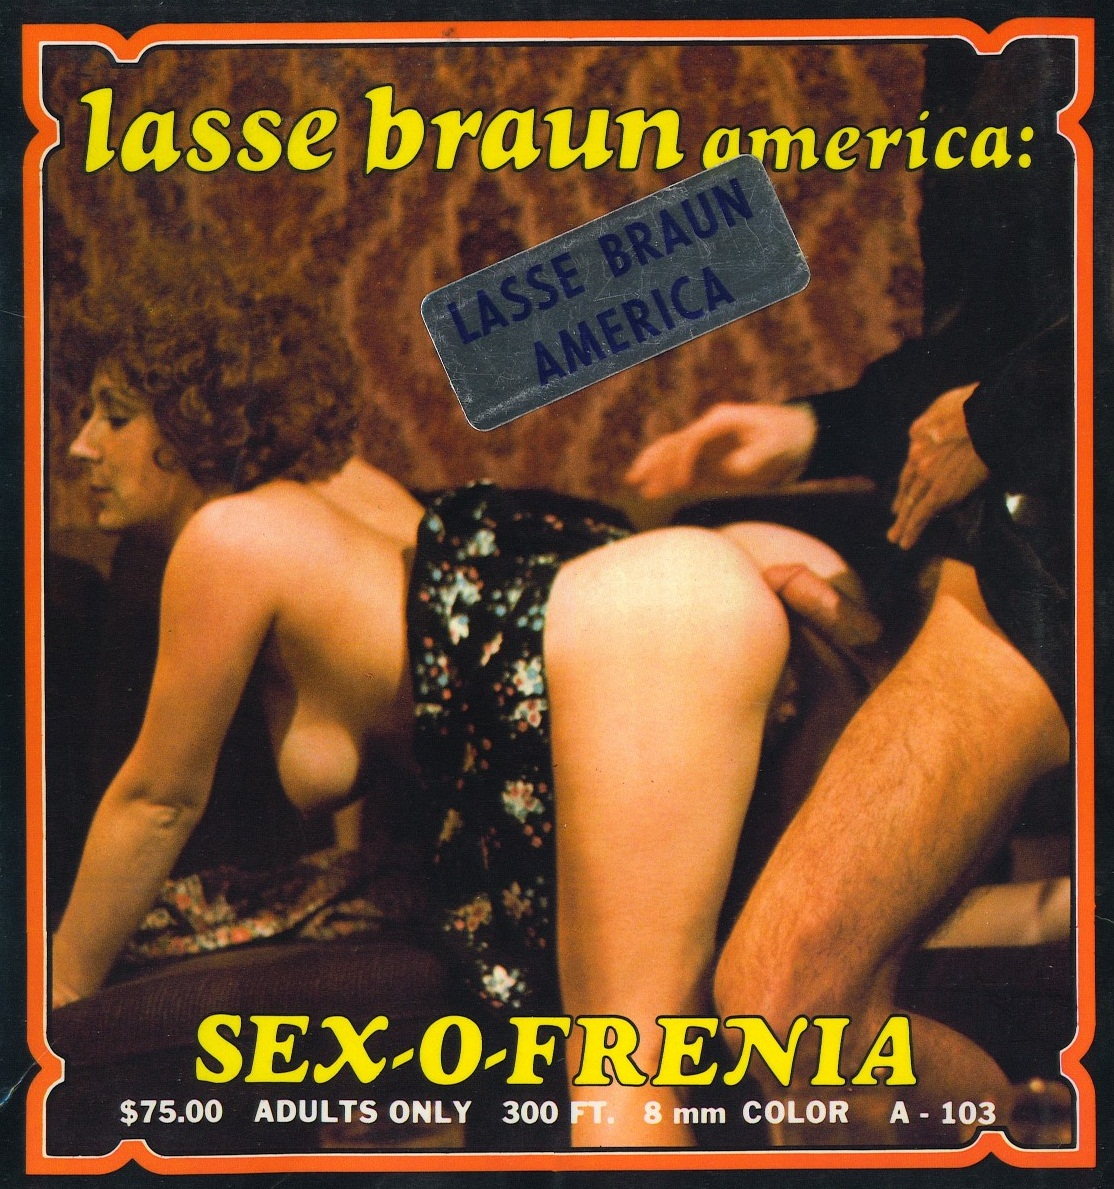 Lasse Braun Film A-103 - Sex-O-Frenia (version 2)